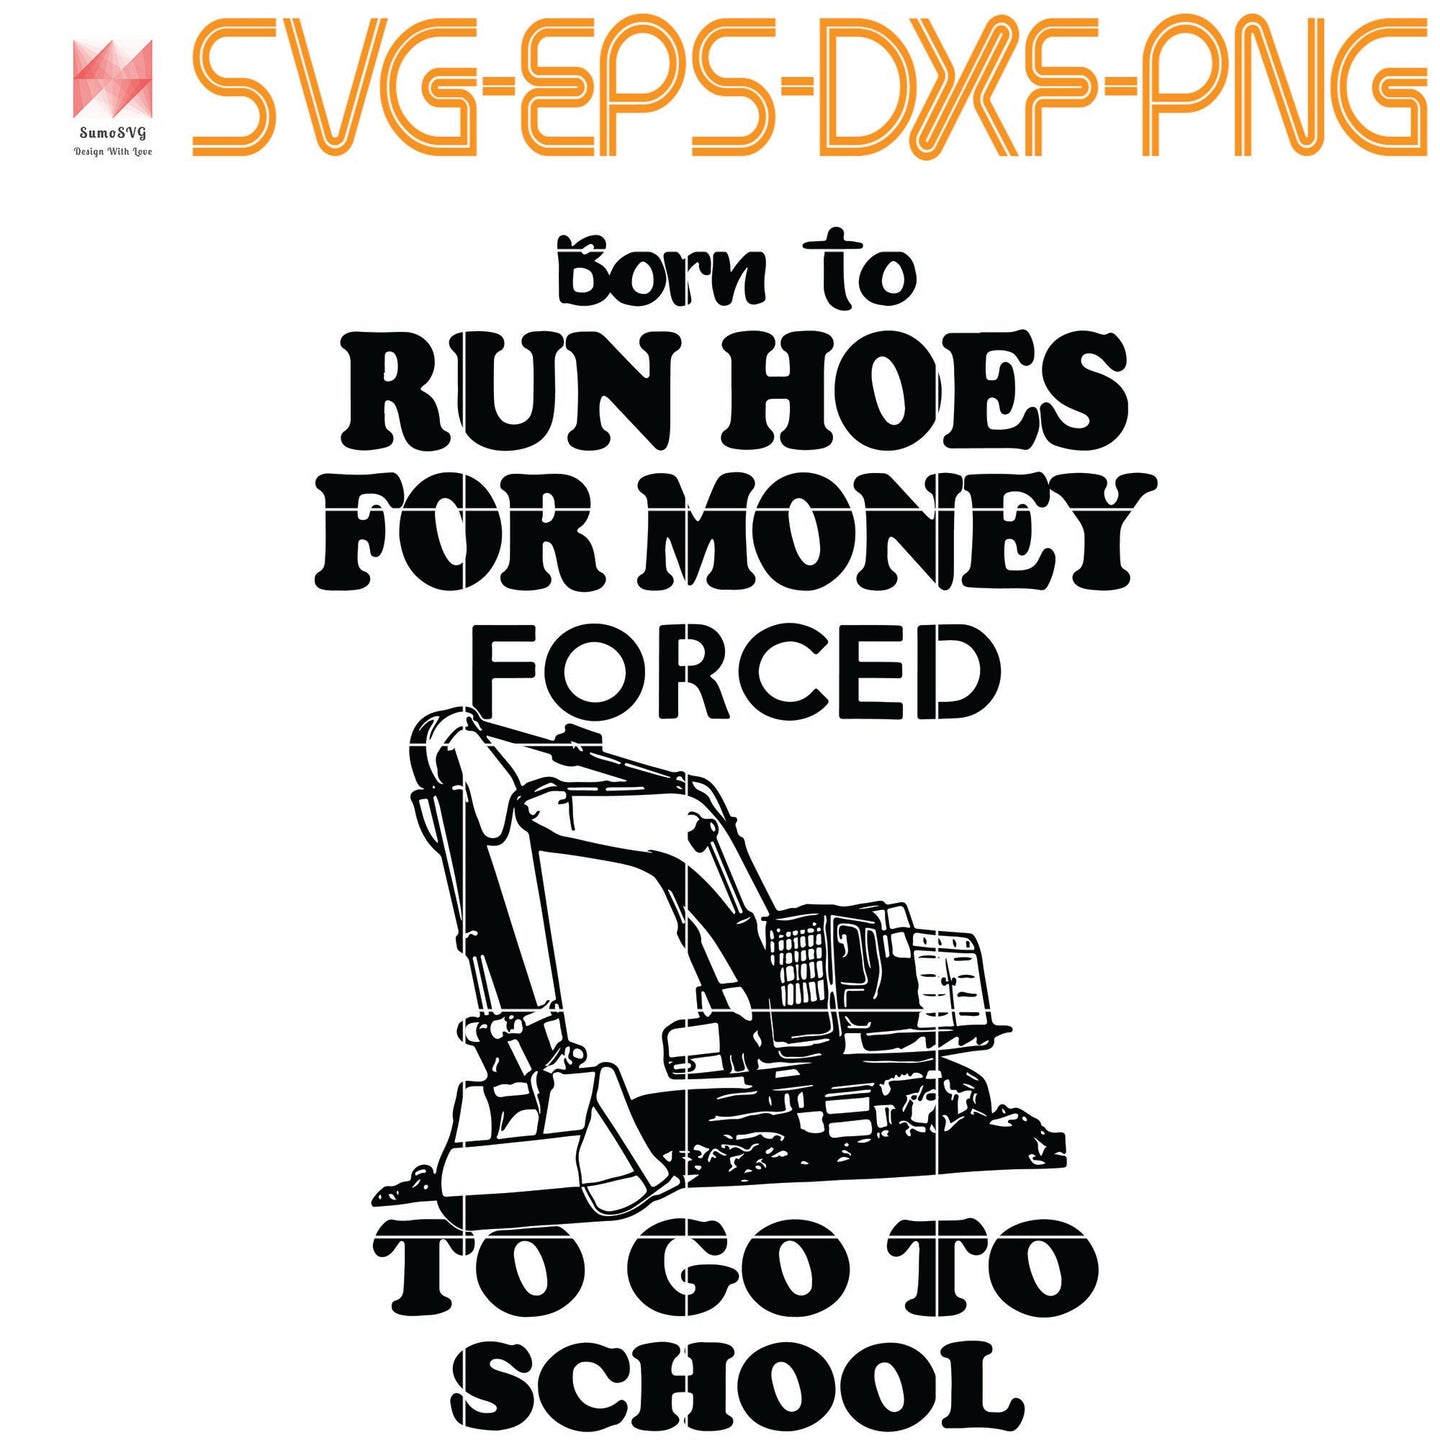 Born to run hoes for money Forced to go to school, Quotes, PNG, EPS, DXF, Digital Download